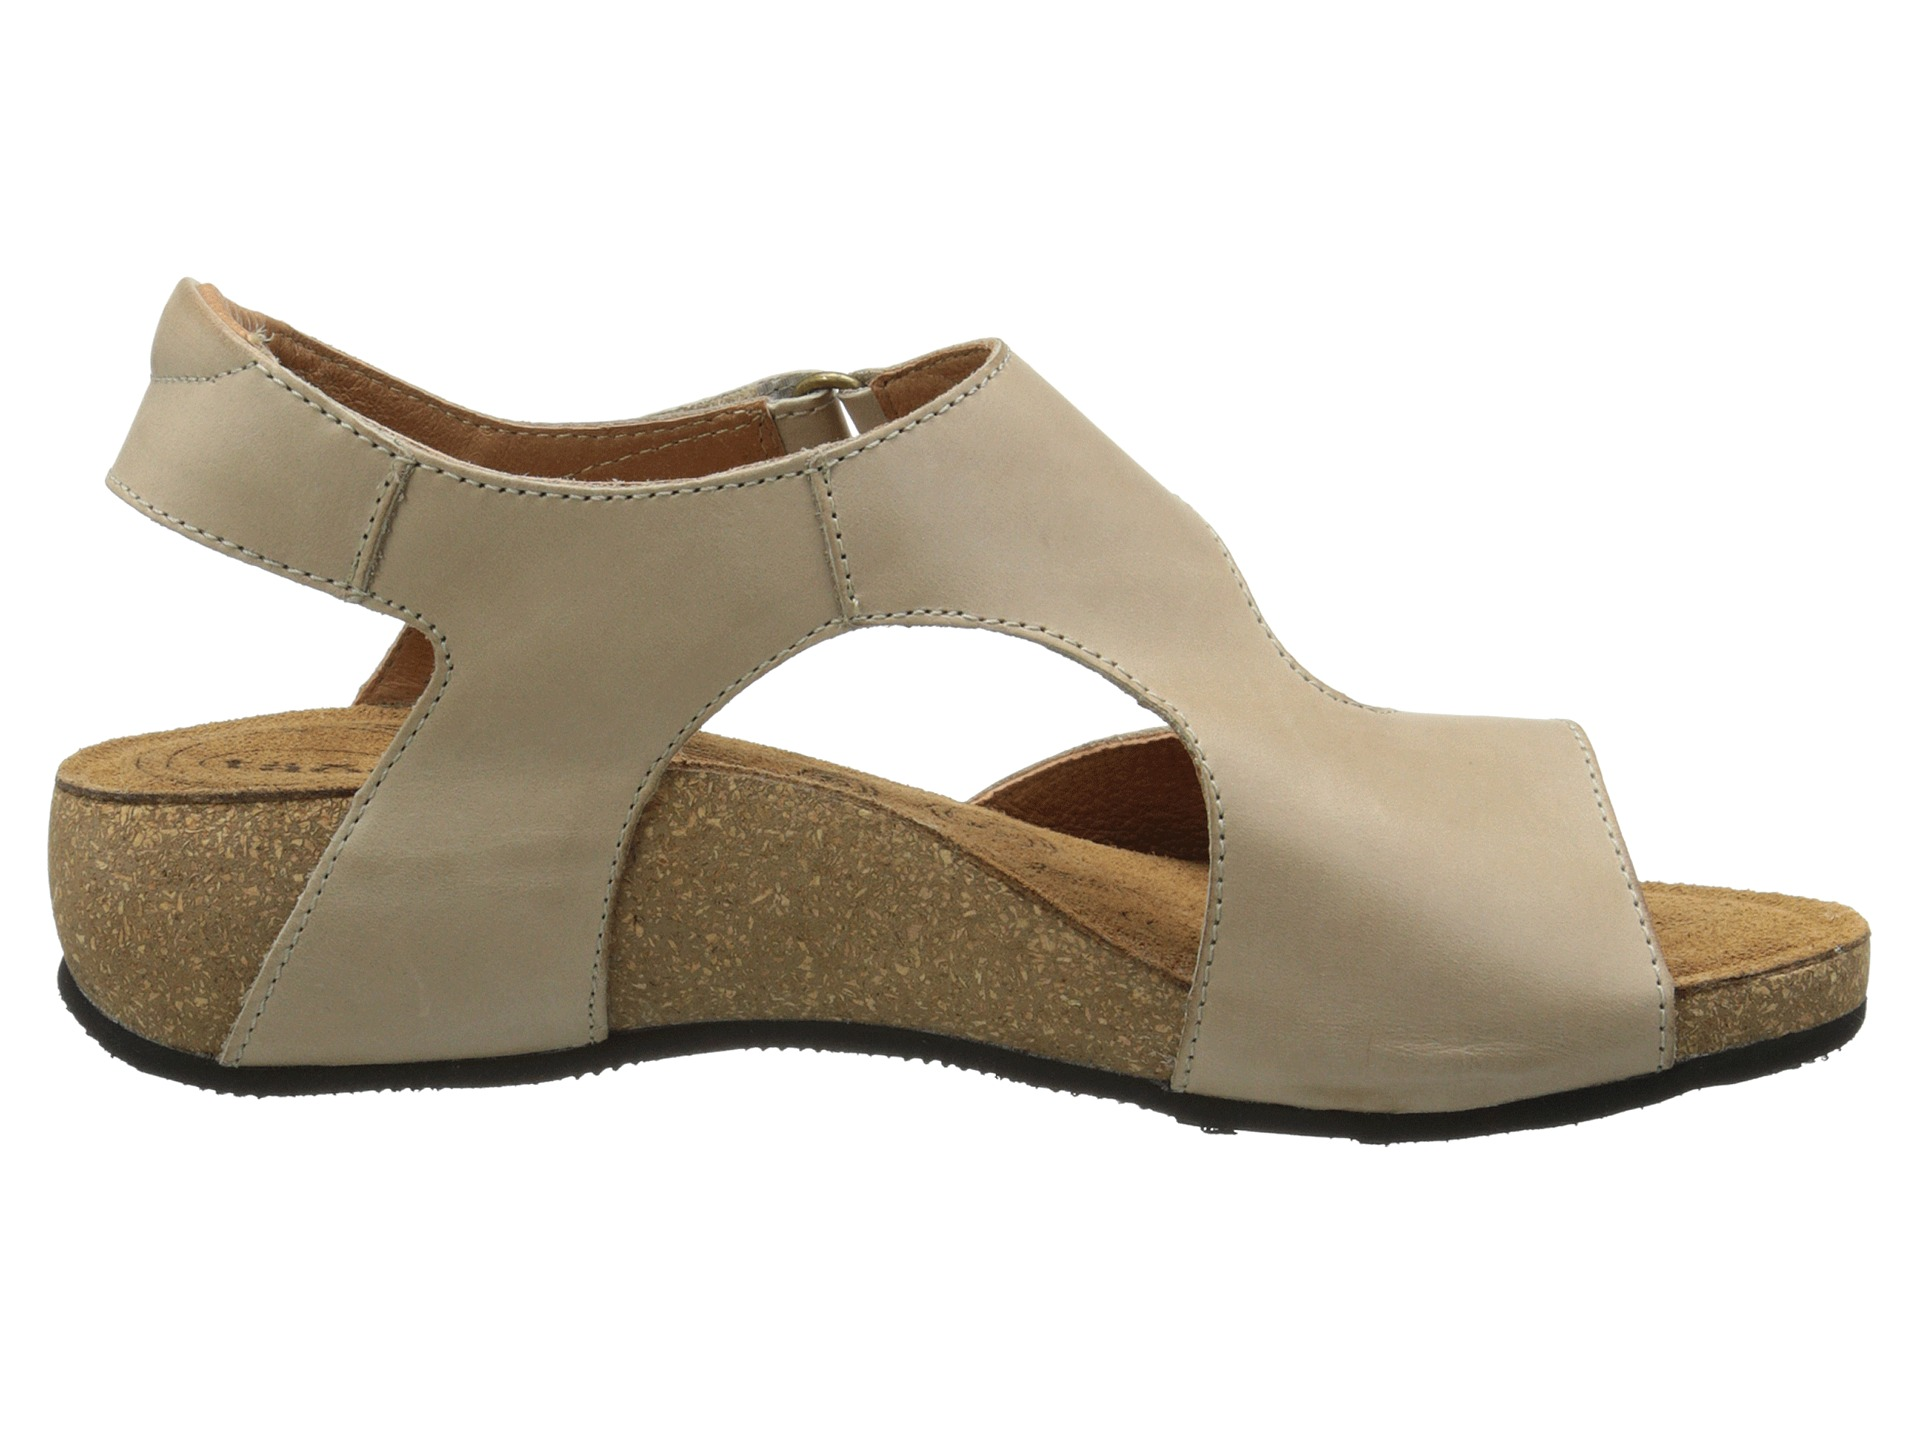 Taos Shoes Womens Gift